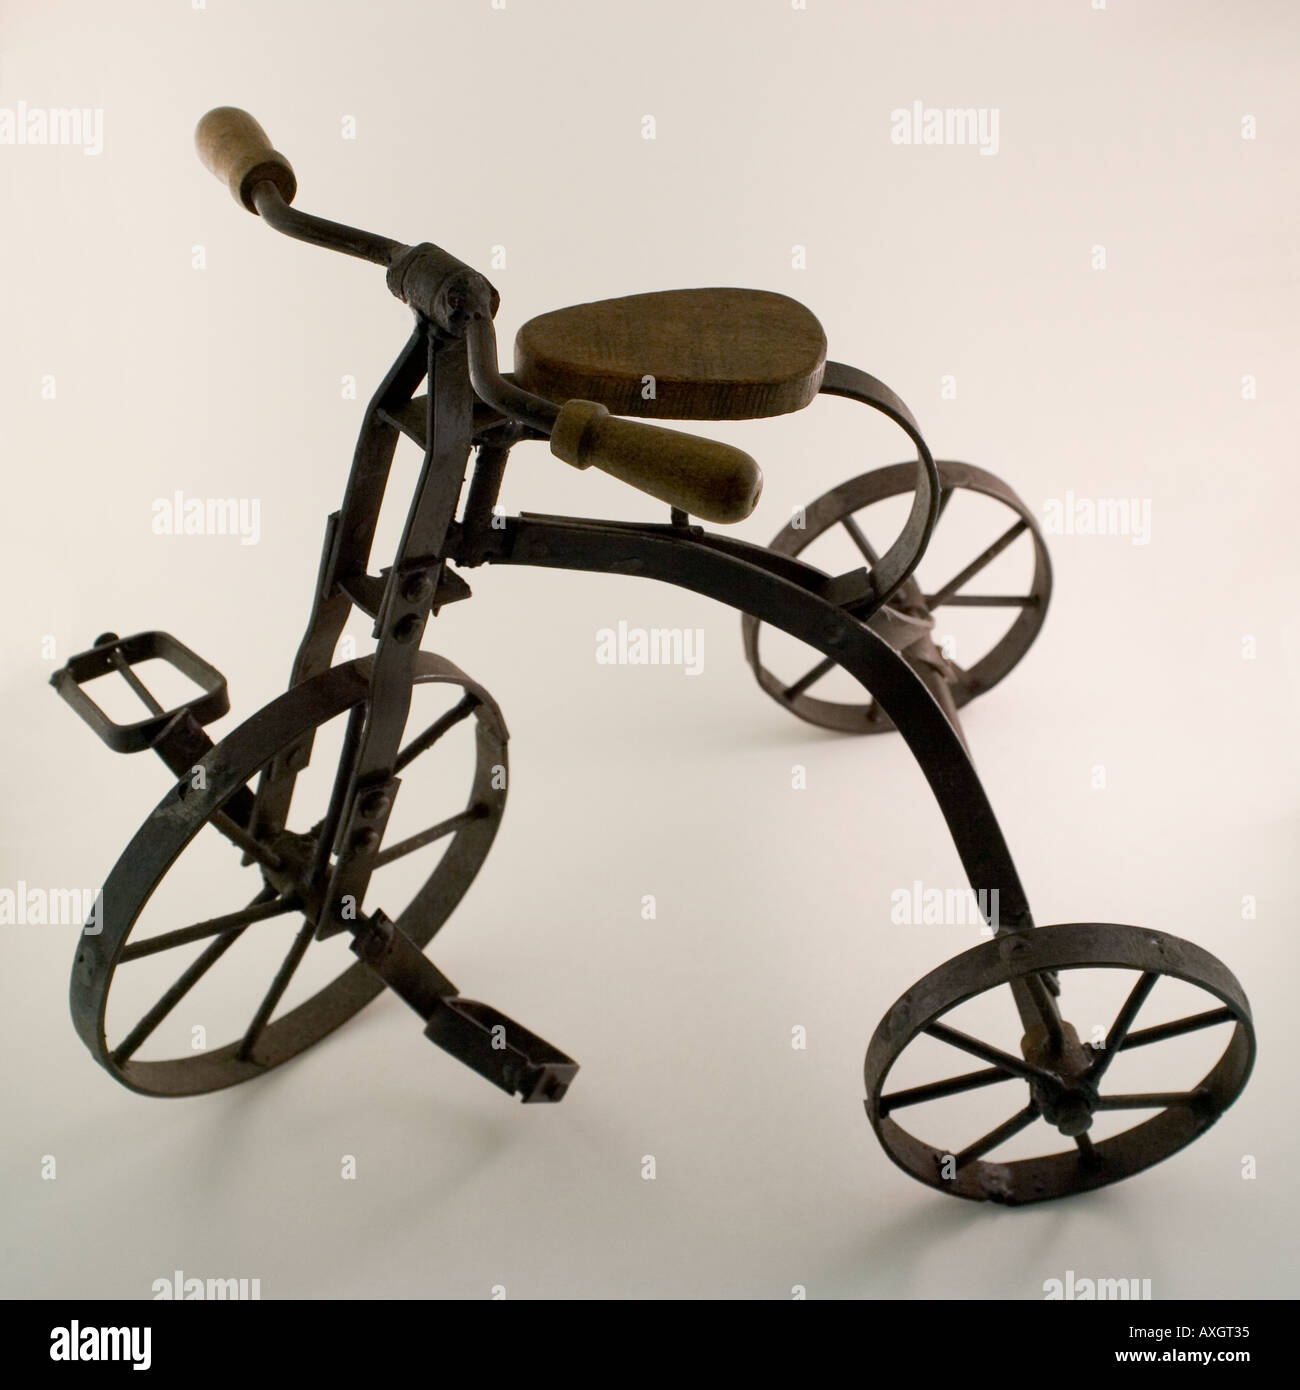 Vintage toy tricycle - Stock Image